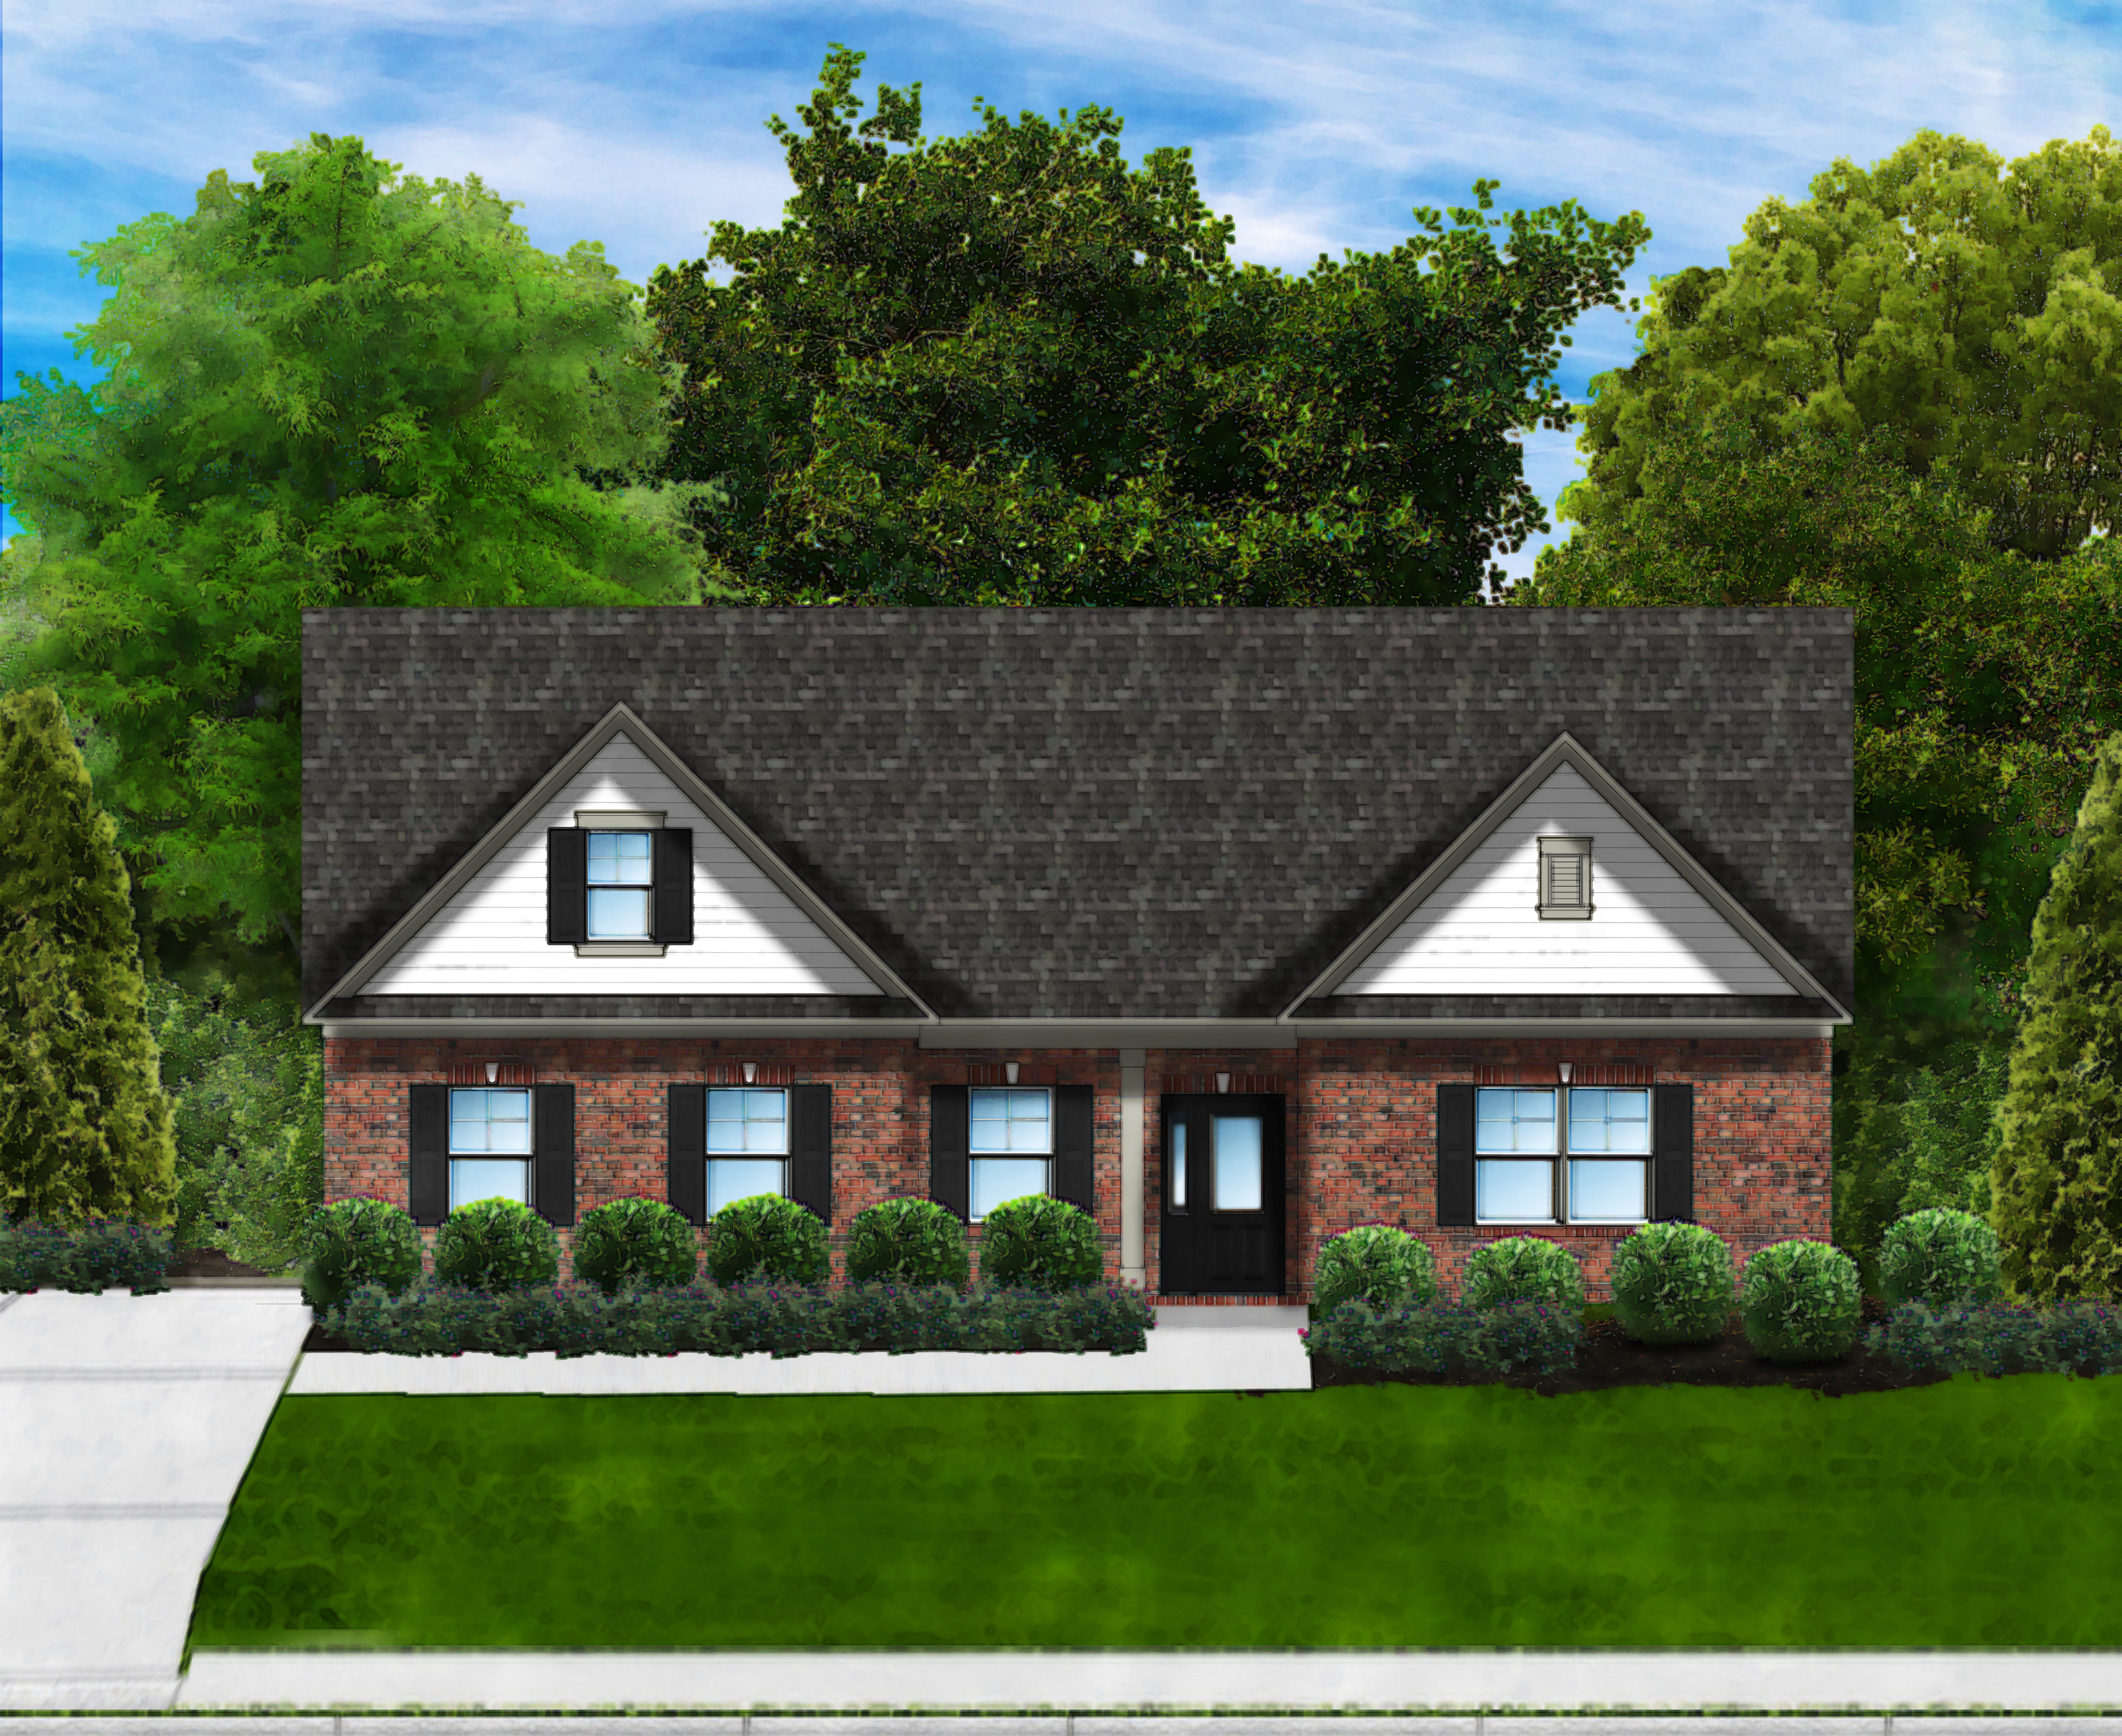 Marsh Bay C4 (Brick 4 Sides) by Great Southern Homes